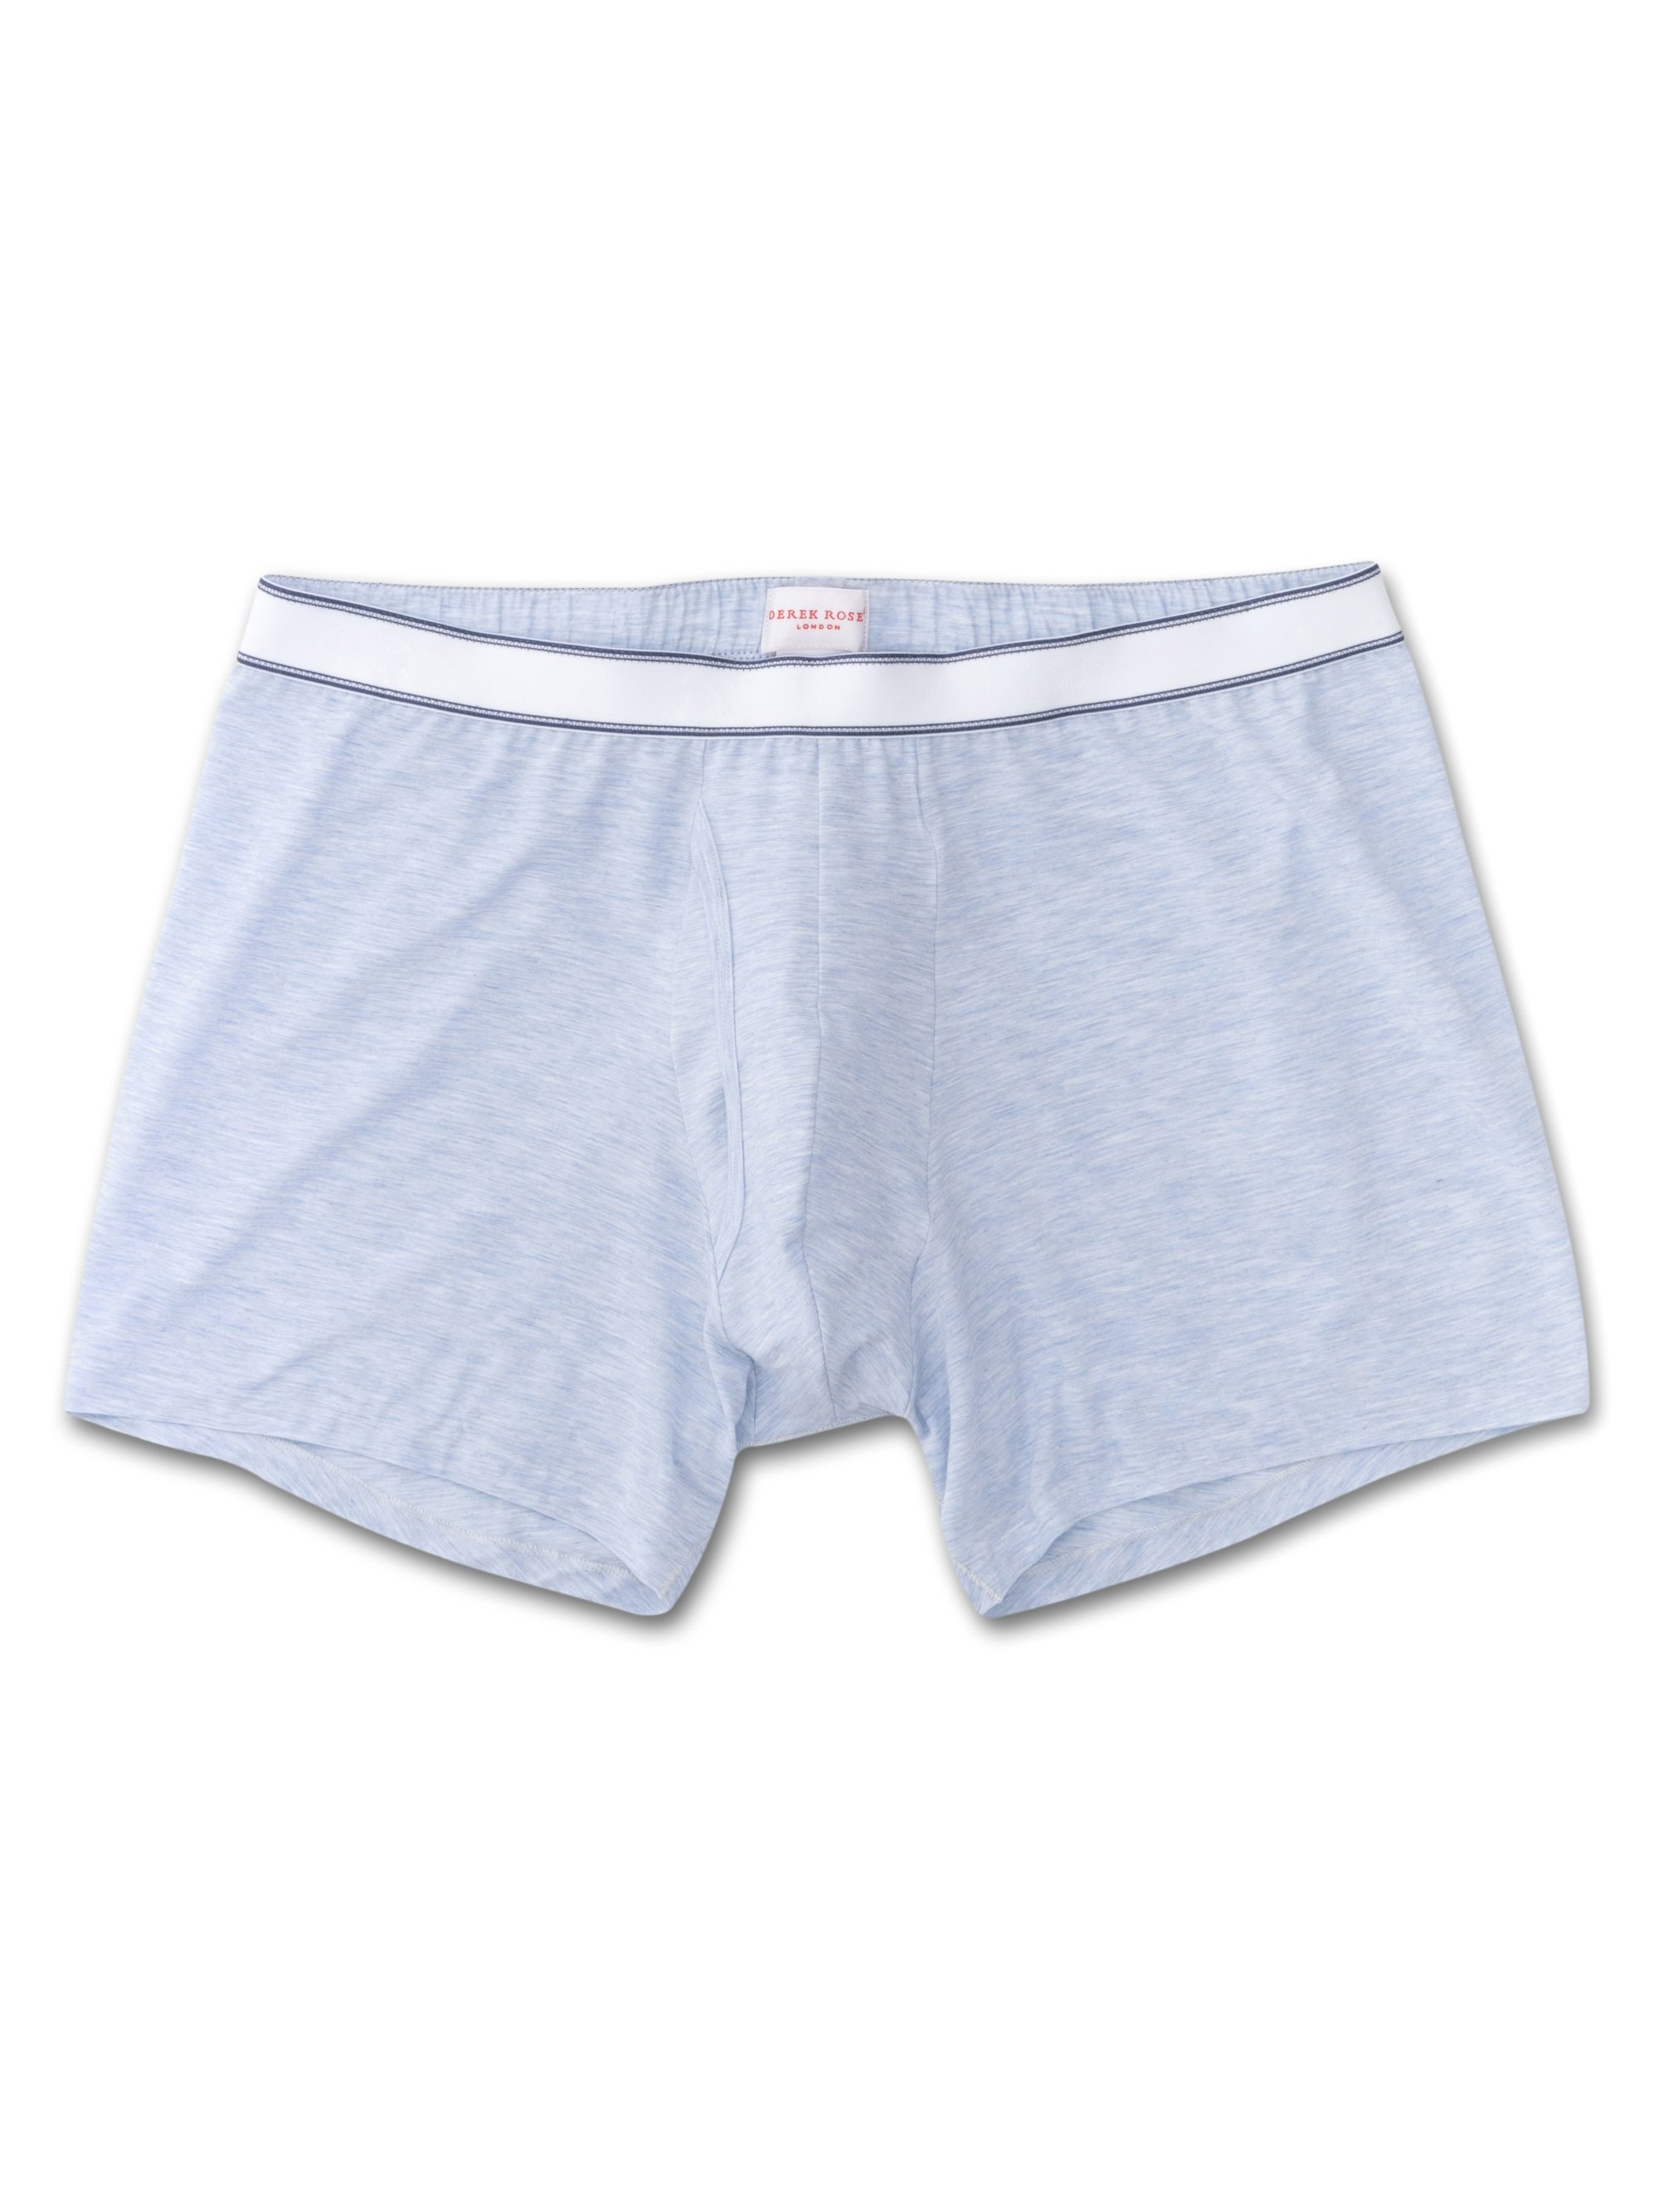 Men's Trunks Ethan Micro Modal Stretch Blue